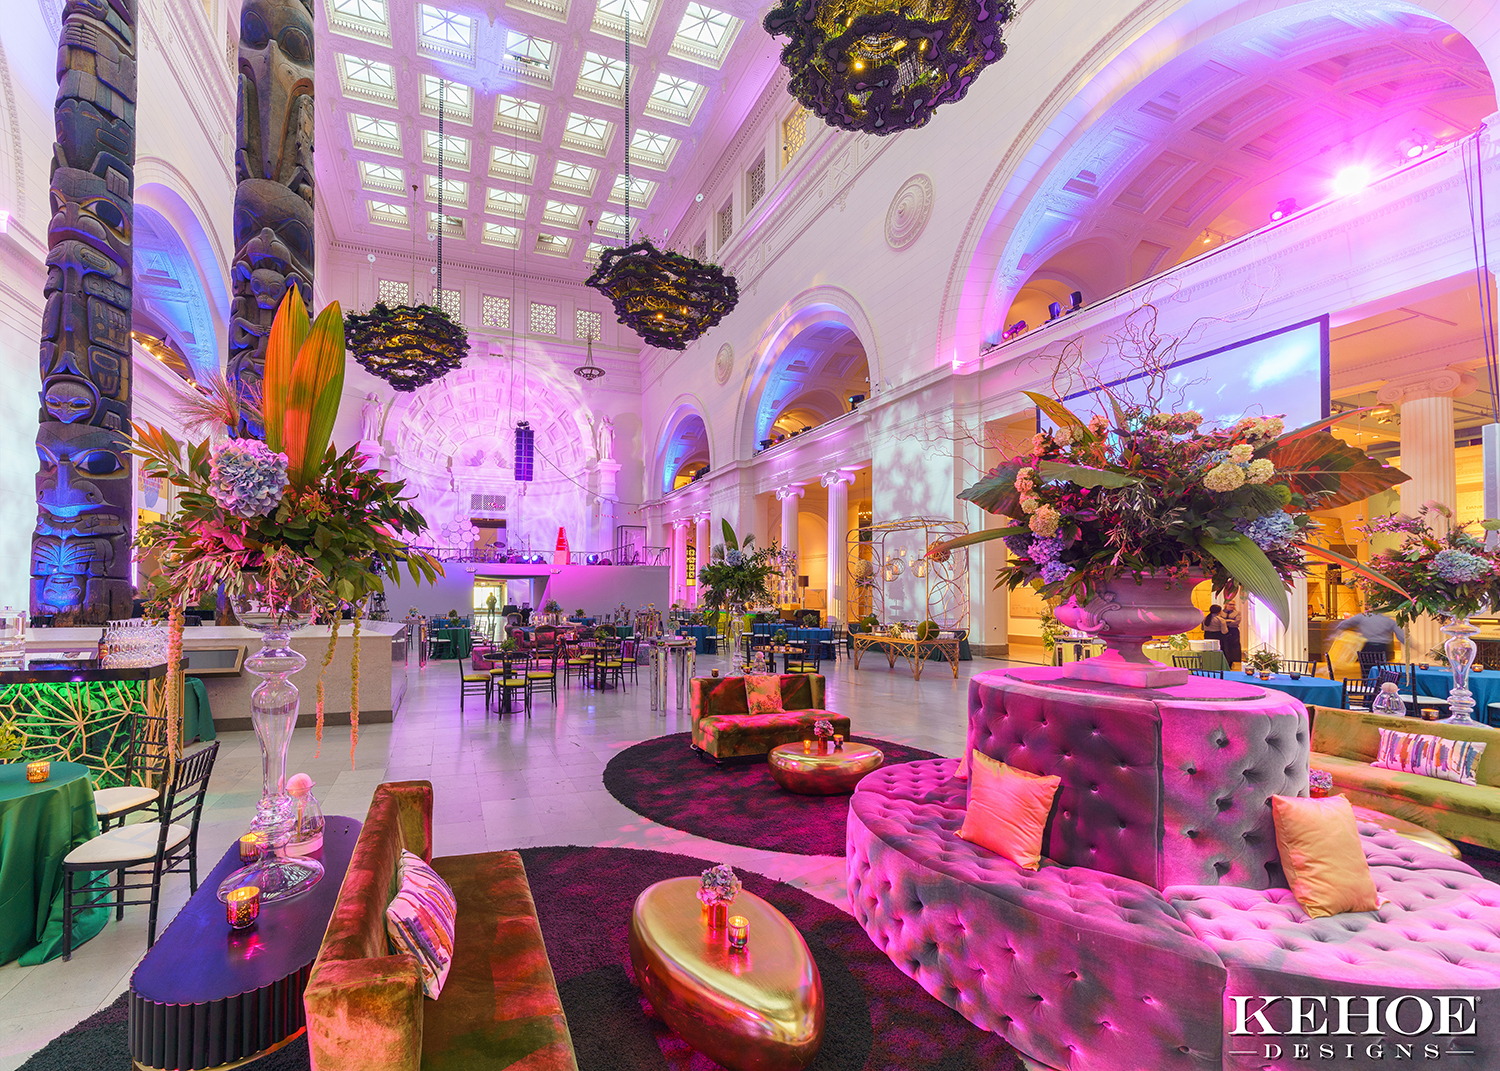 Warm, pink light fills Stanley Field Hall at the Field Museum, which is set up for an event with colorful tufted couches, rugs, and gold coffee tables. Floral arrangements decorate the space.